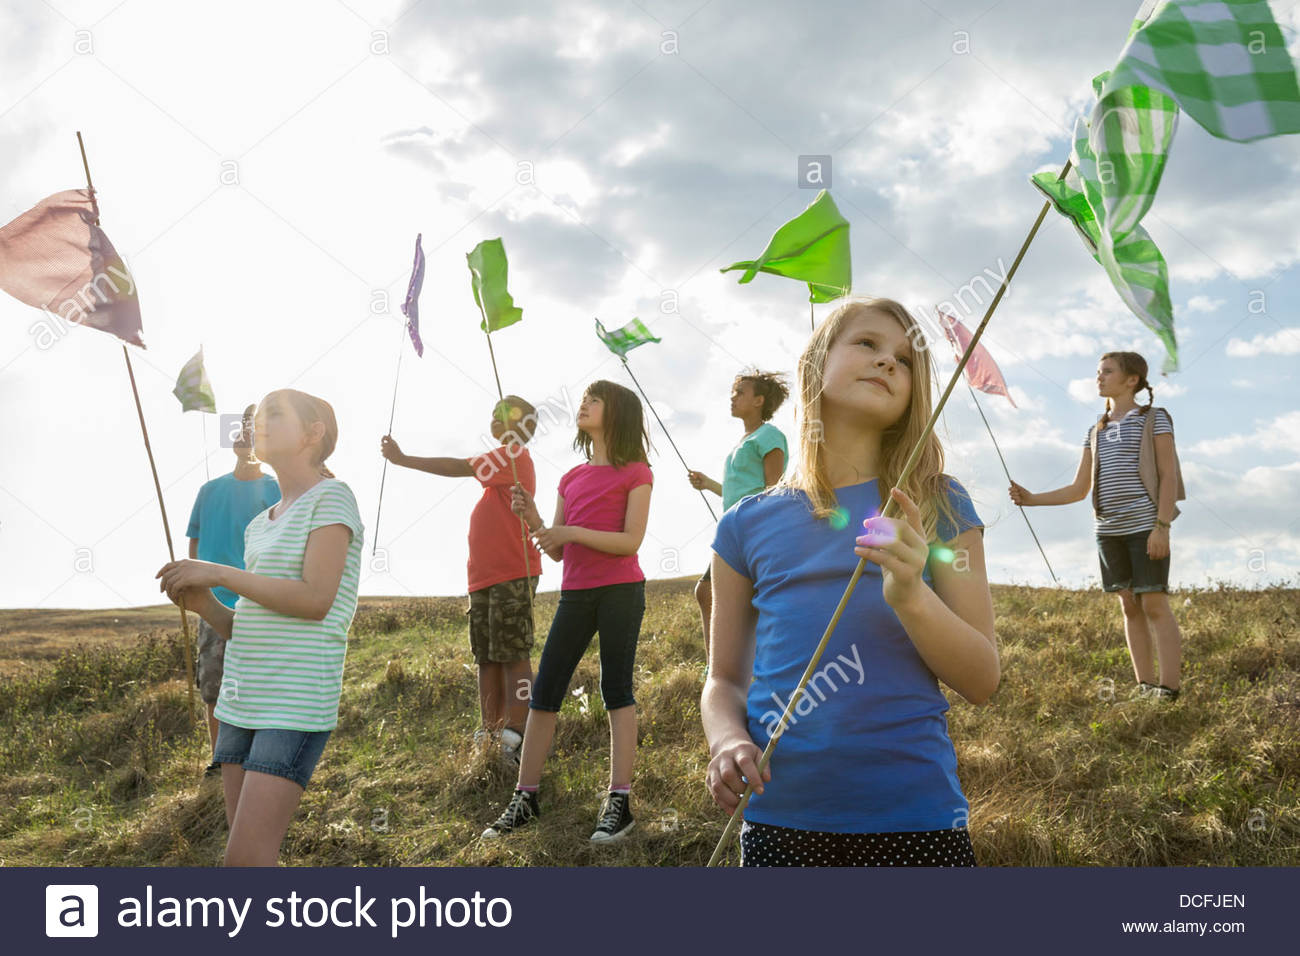 Schoolchildren looking up at flags - Stock Image